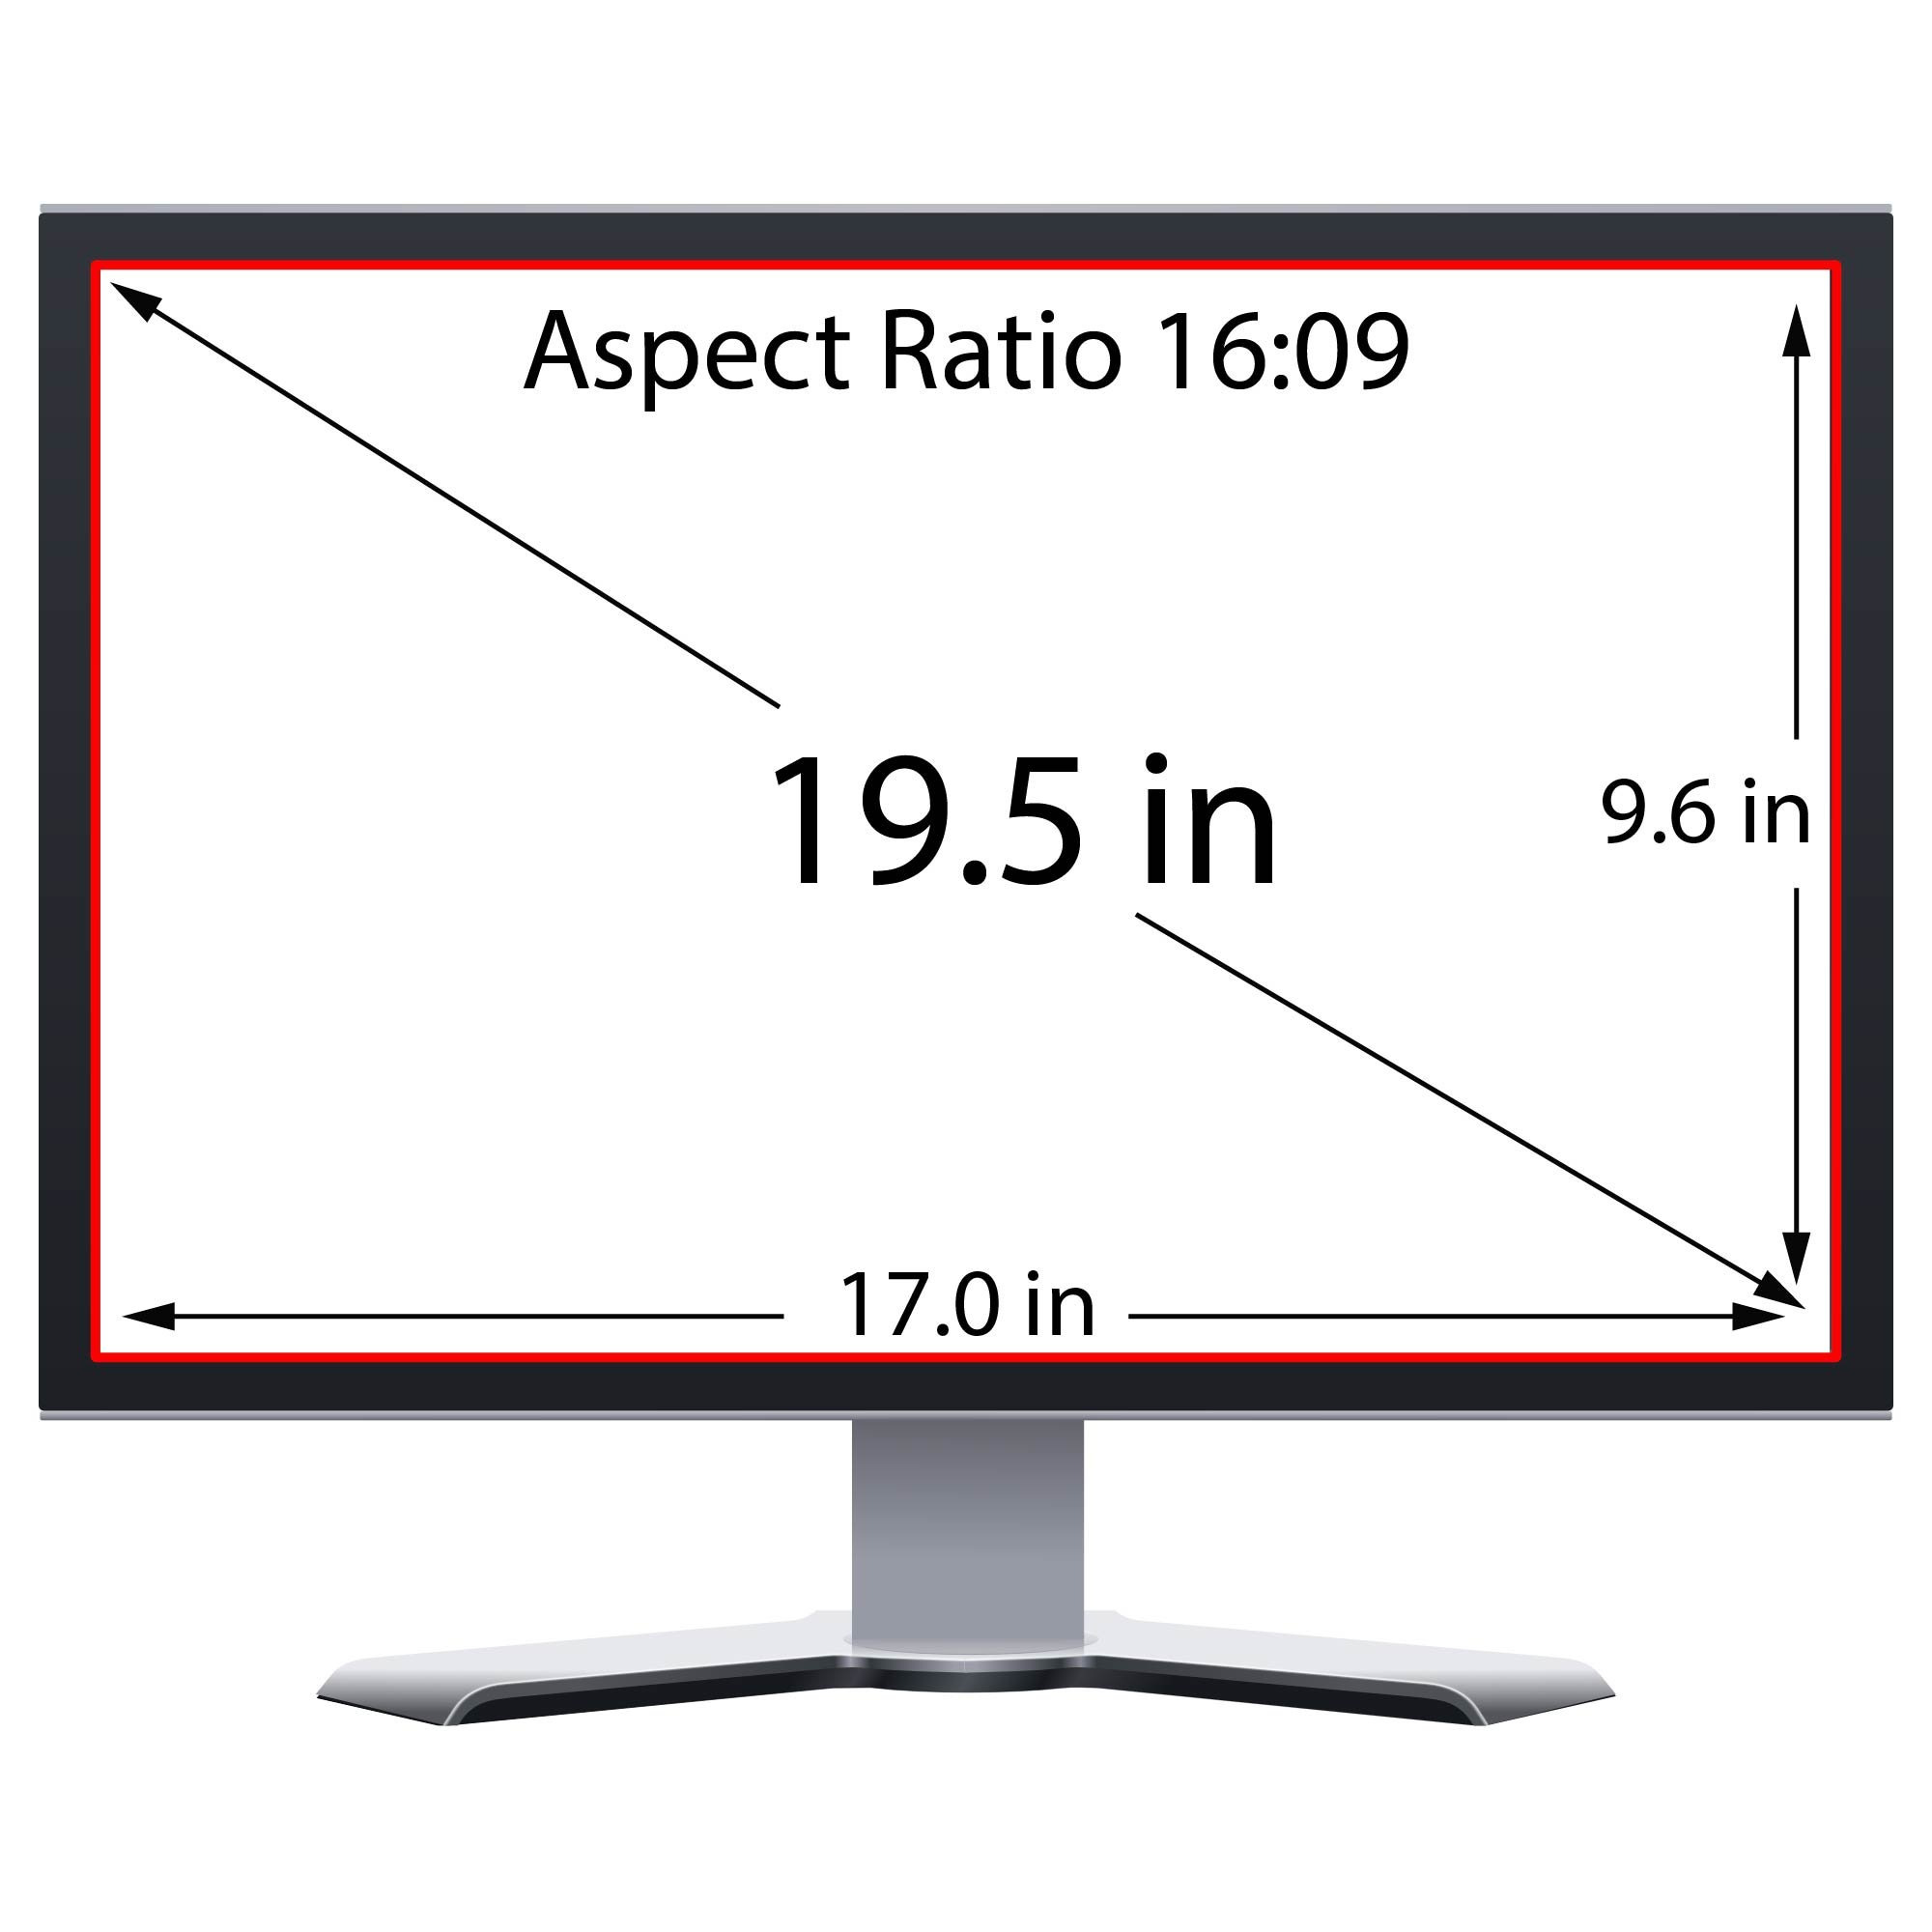 Privacy Screen Filter and Anti Glare for 19.5 Inches Desktop Computer Widescreen Monitor with Aspect Ratio 16:09 Please check Dimension Carefully